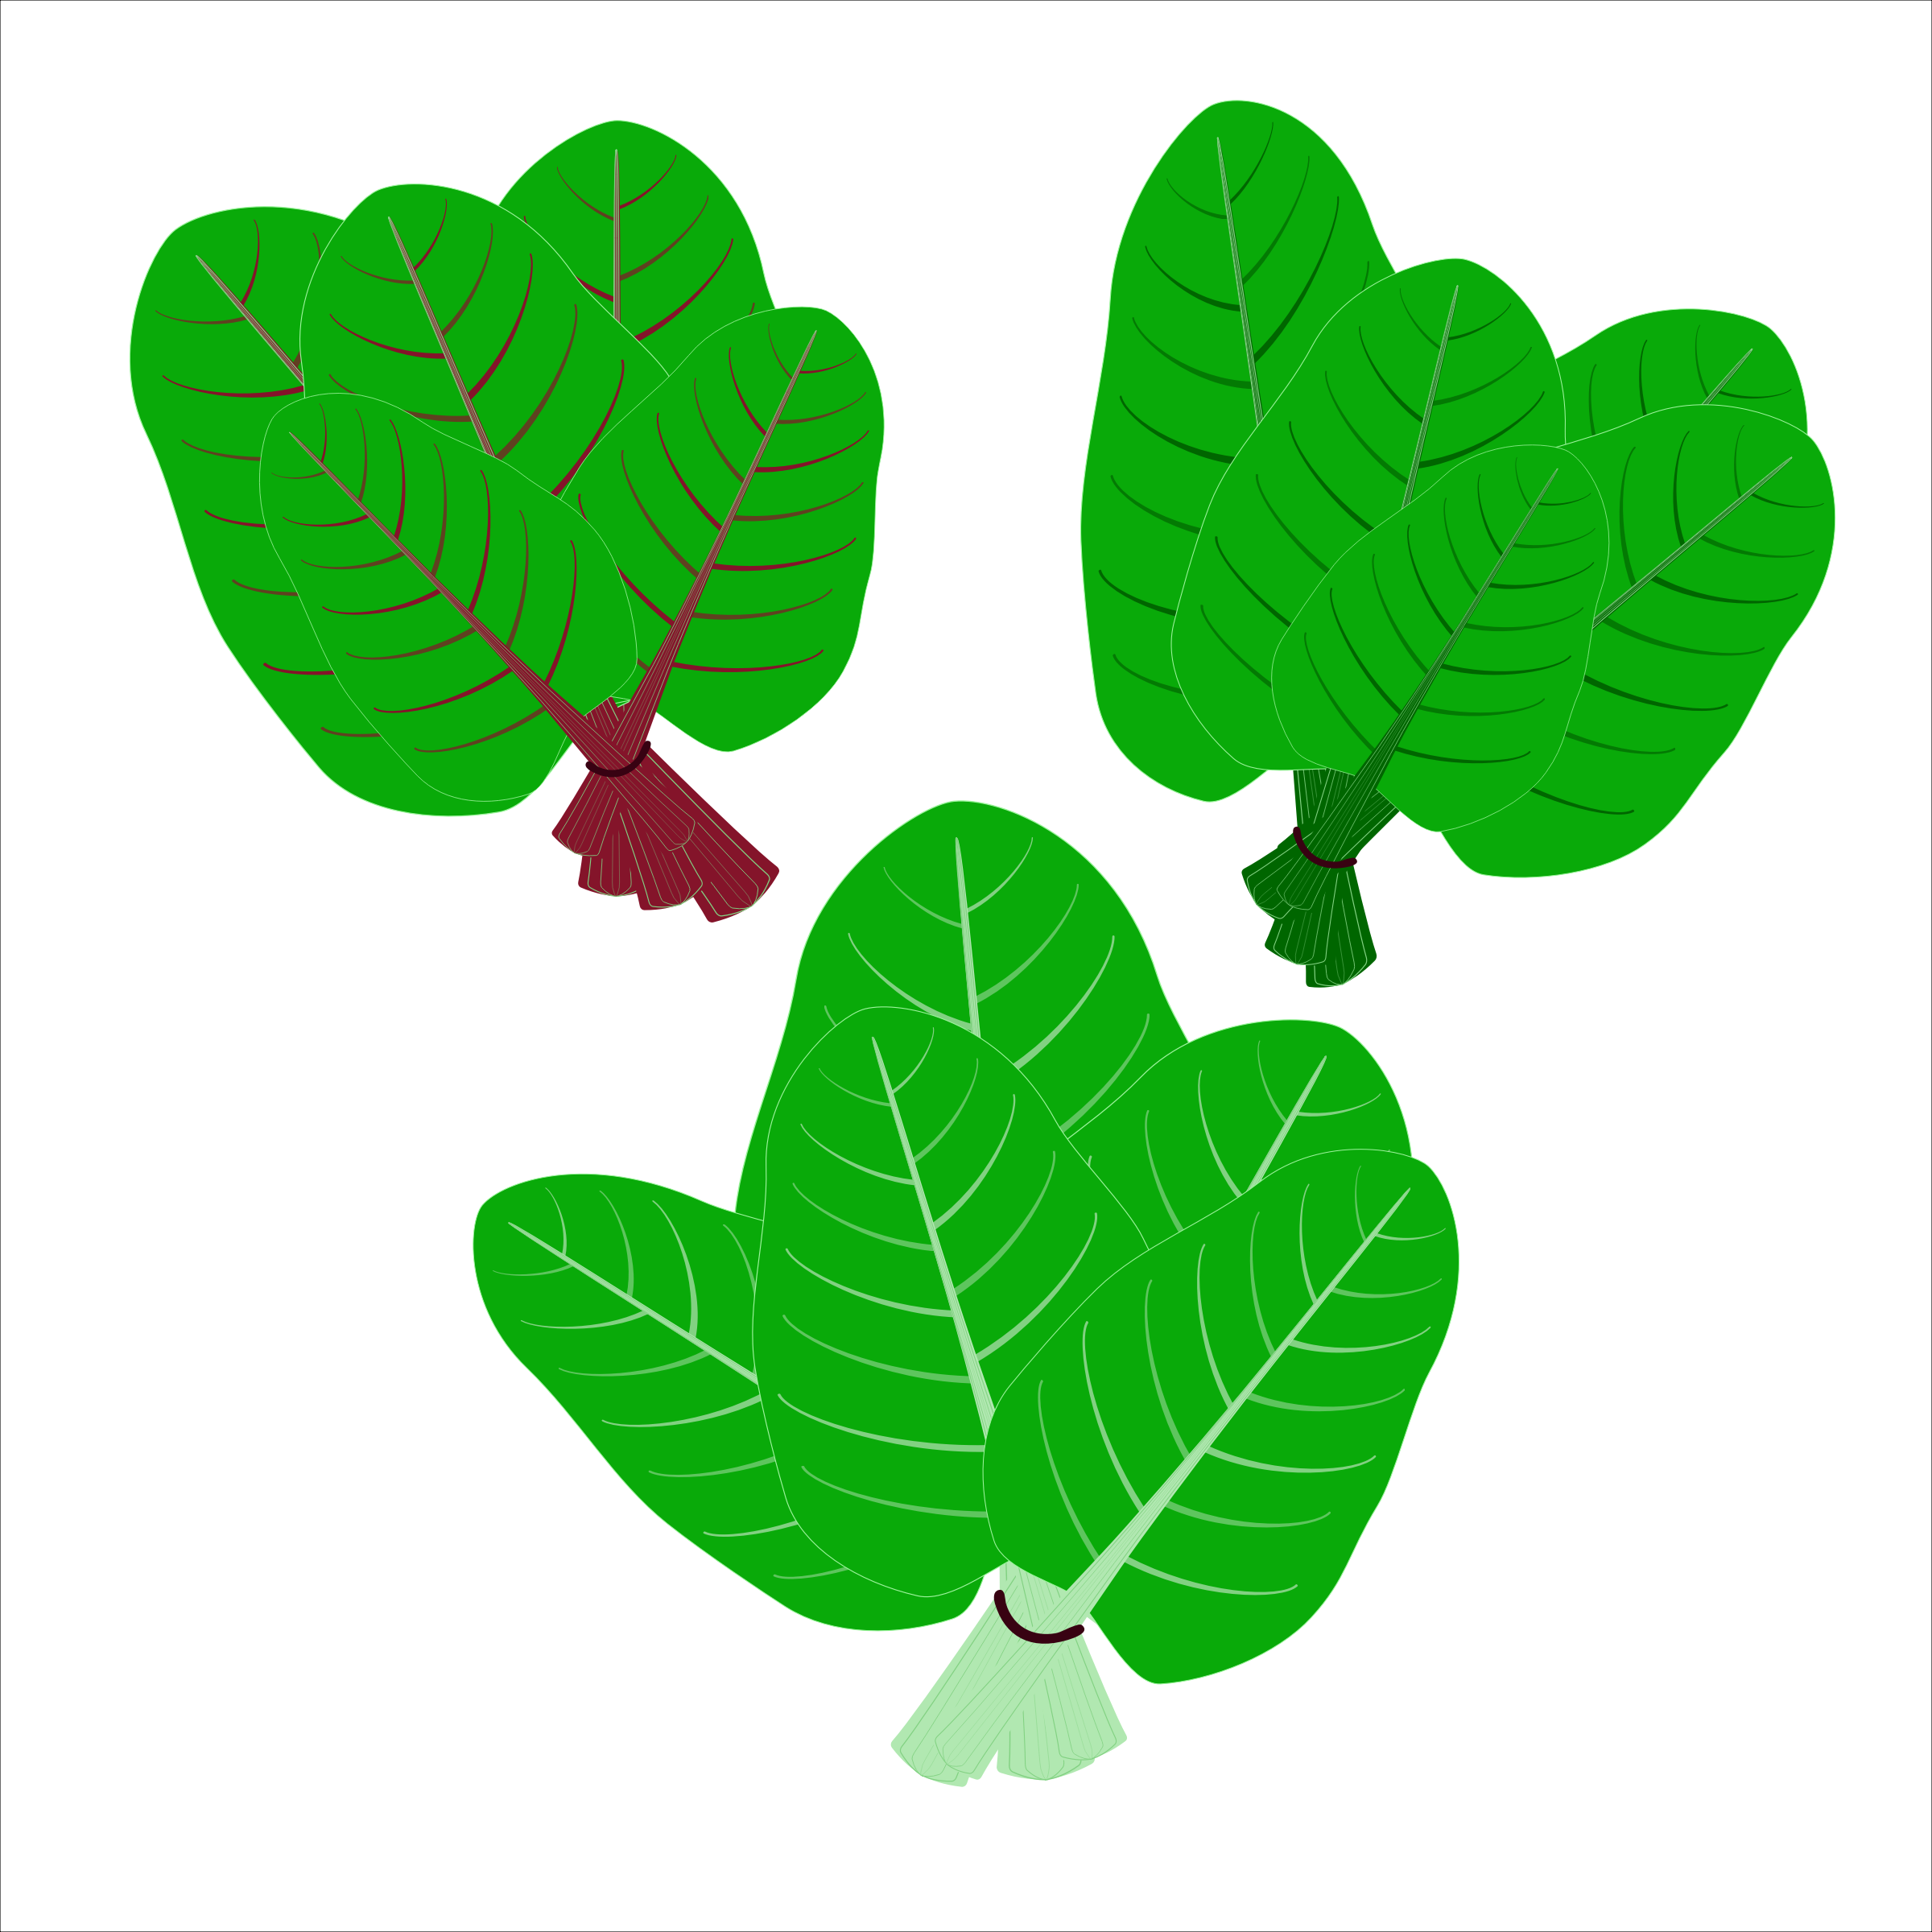 Flat vector icons. Leafy green vegetable.Organic and healty food by gogohop